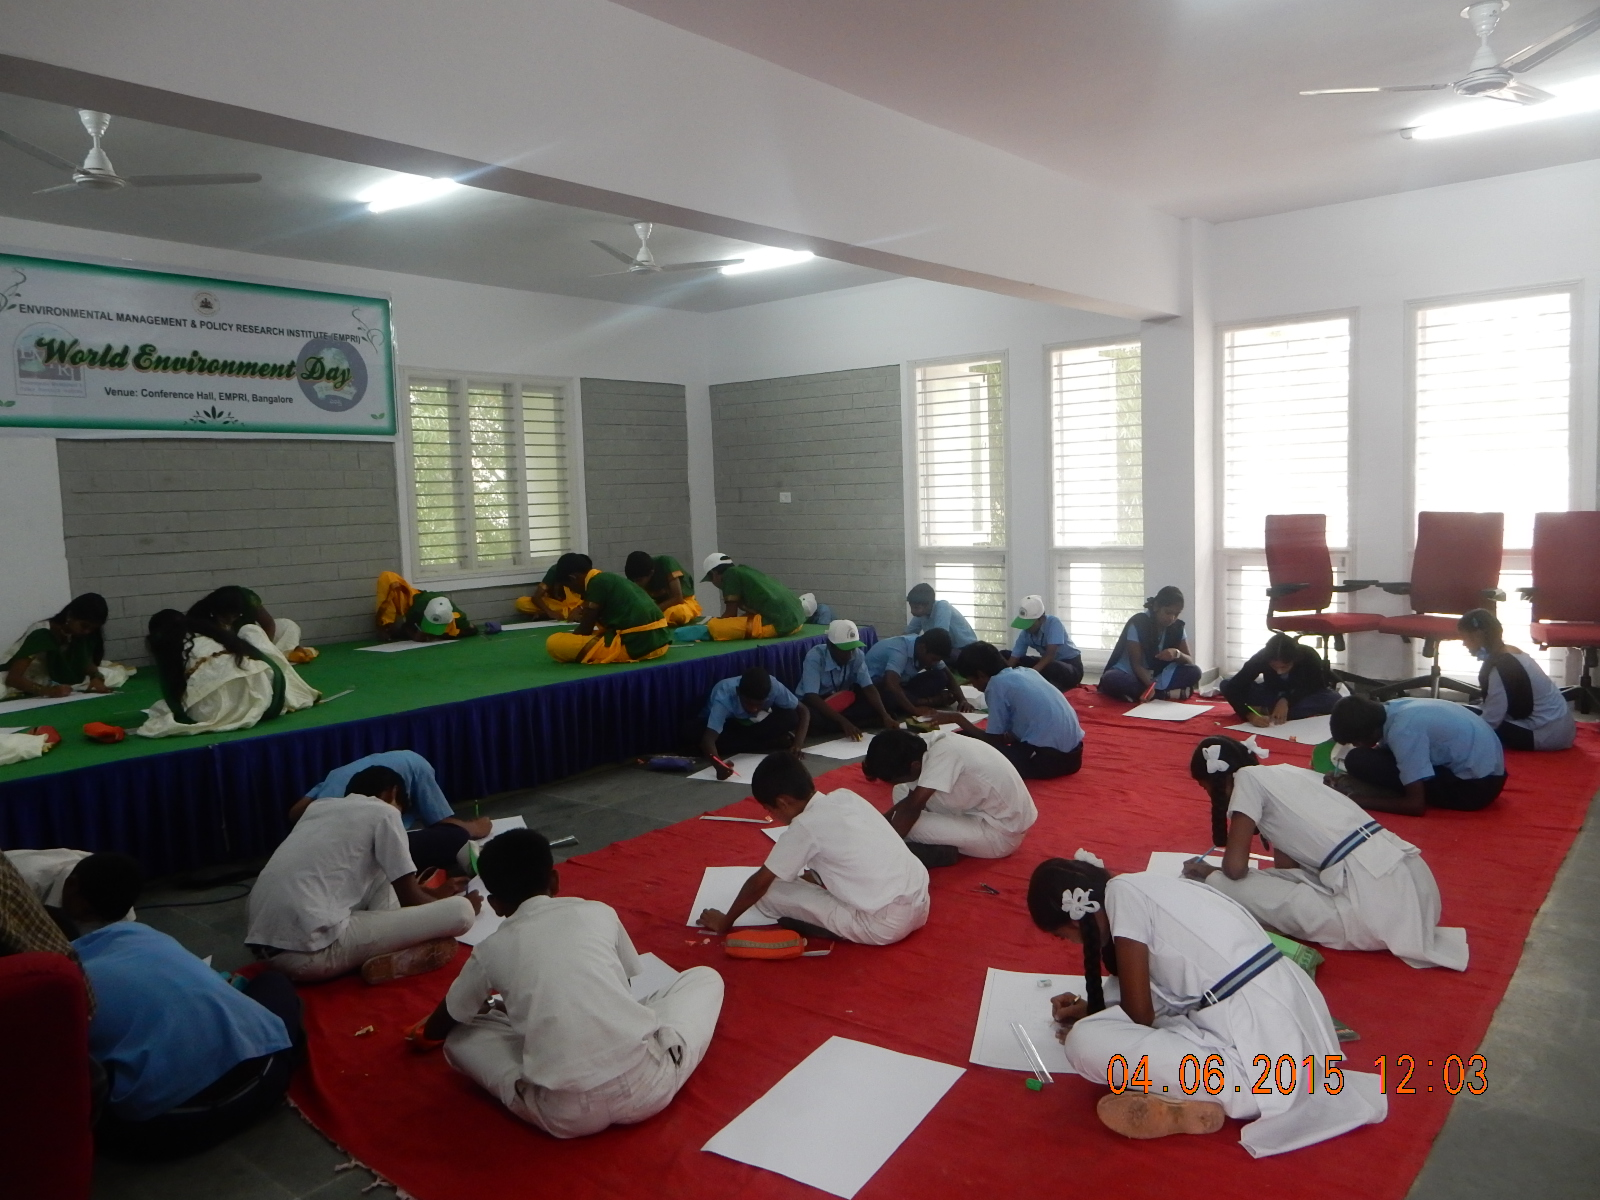 Environment Day Drawing Competition